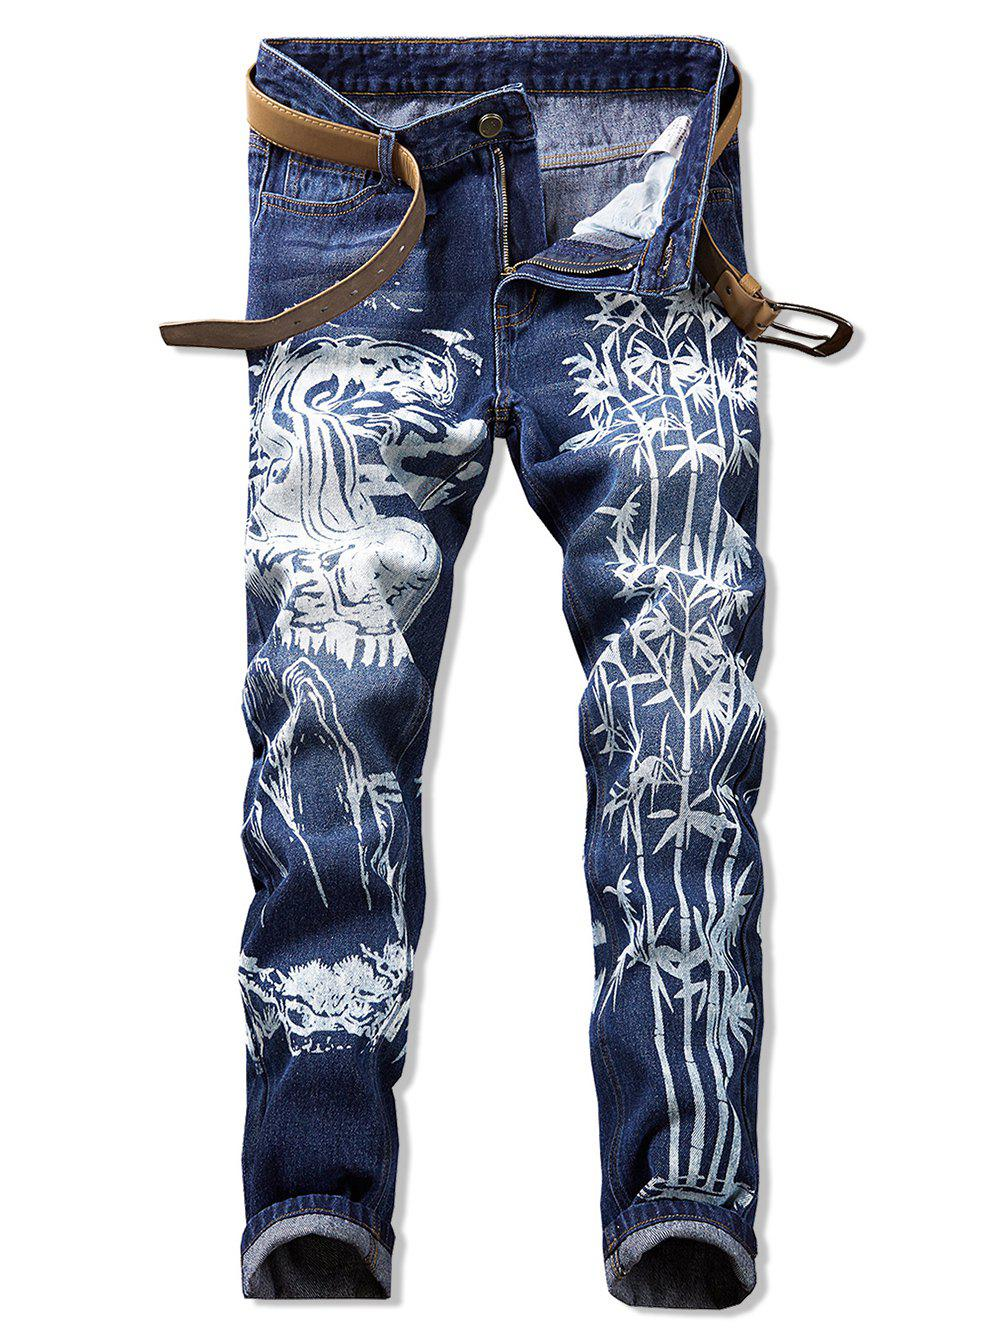 Sale Bamboo Printed Casual Zip Fly Jeans